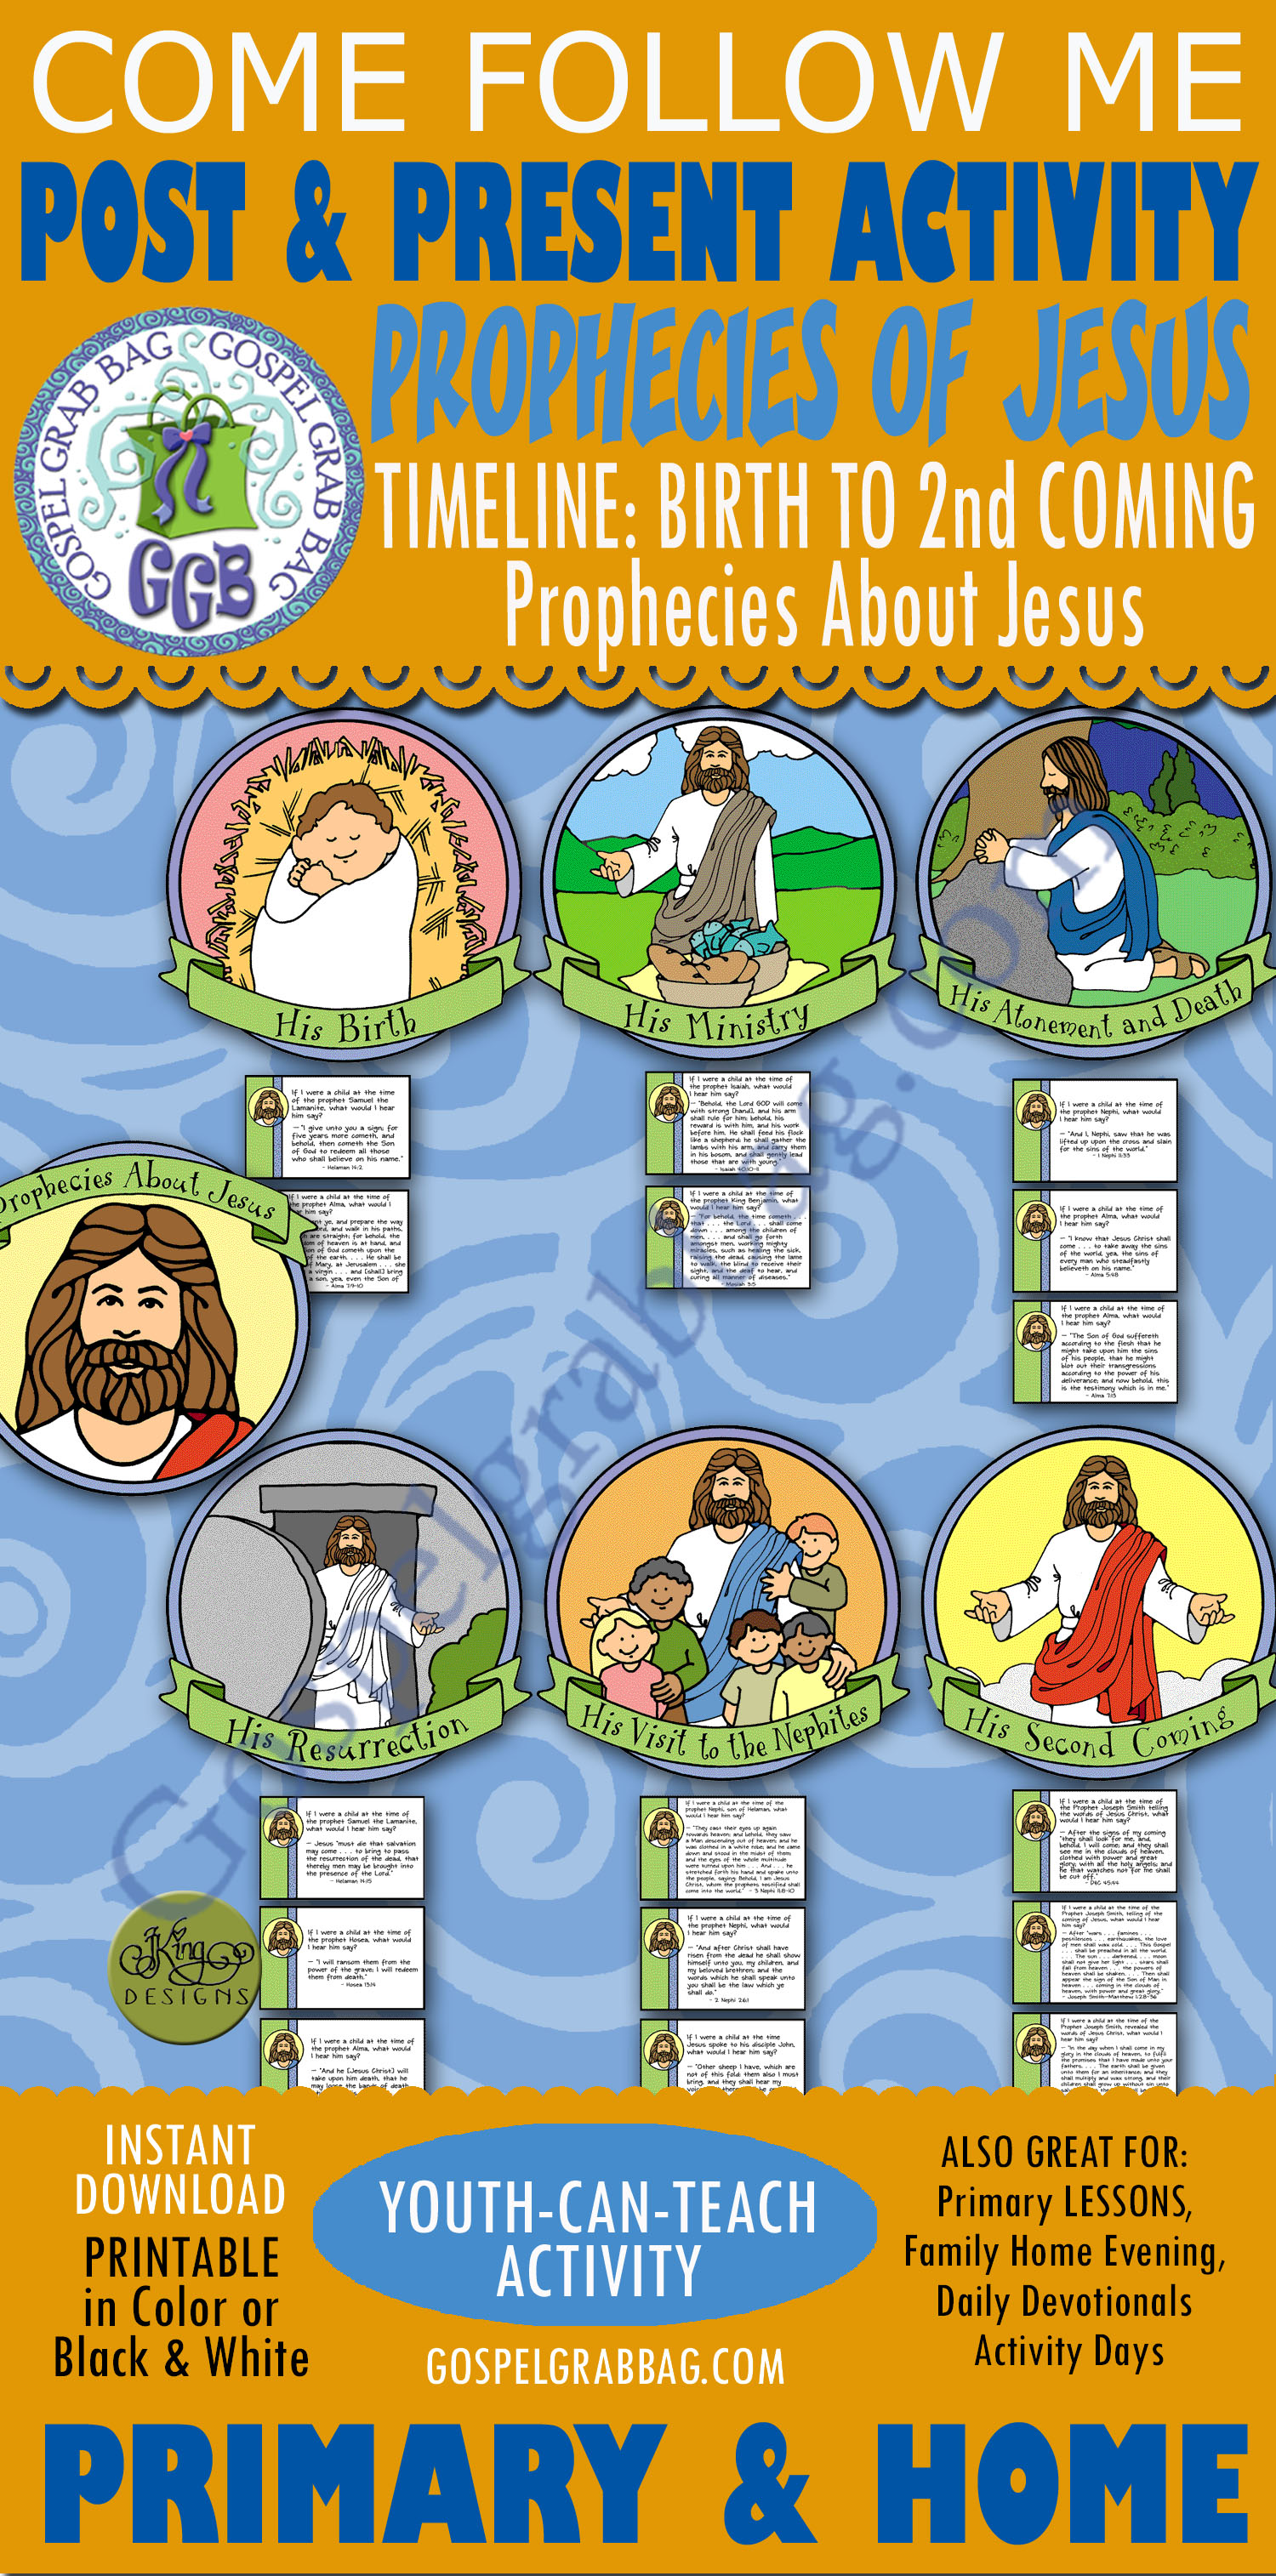 Timeline from Jesus's Birth to Second Coming - Prophecies About Jesus